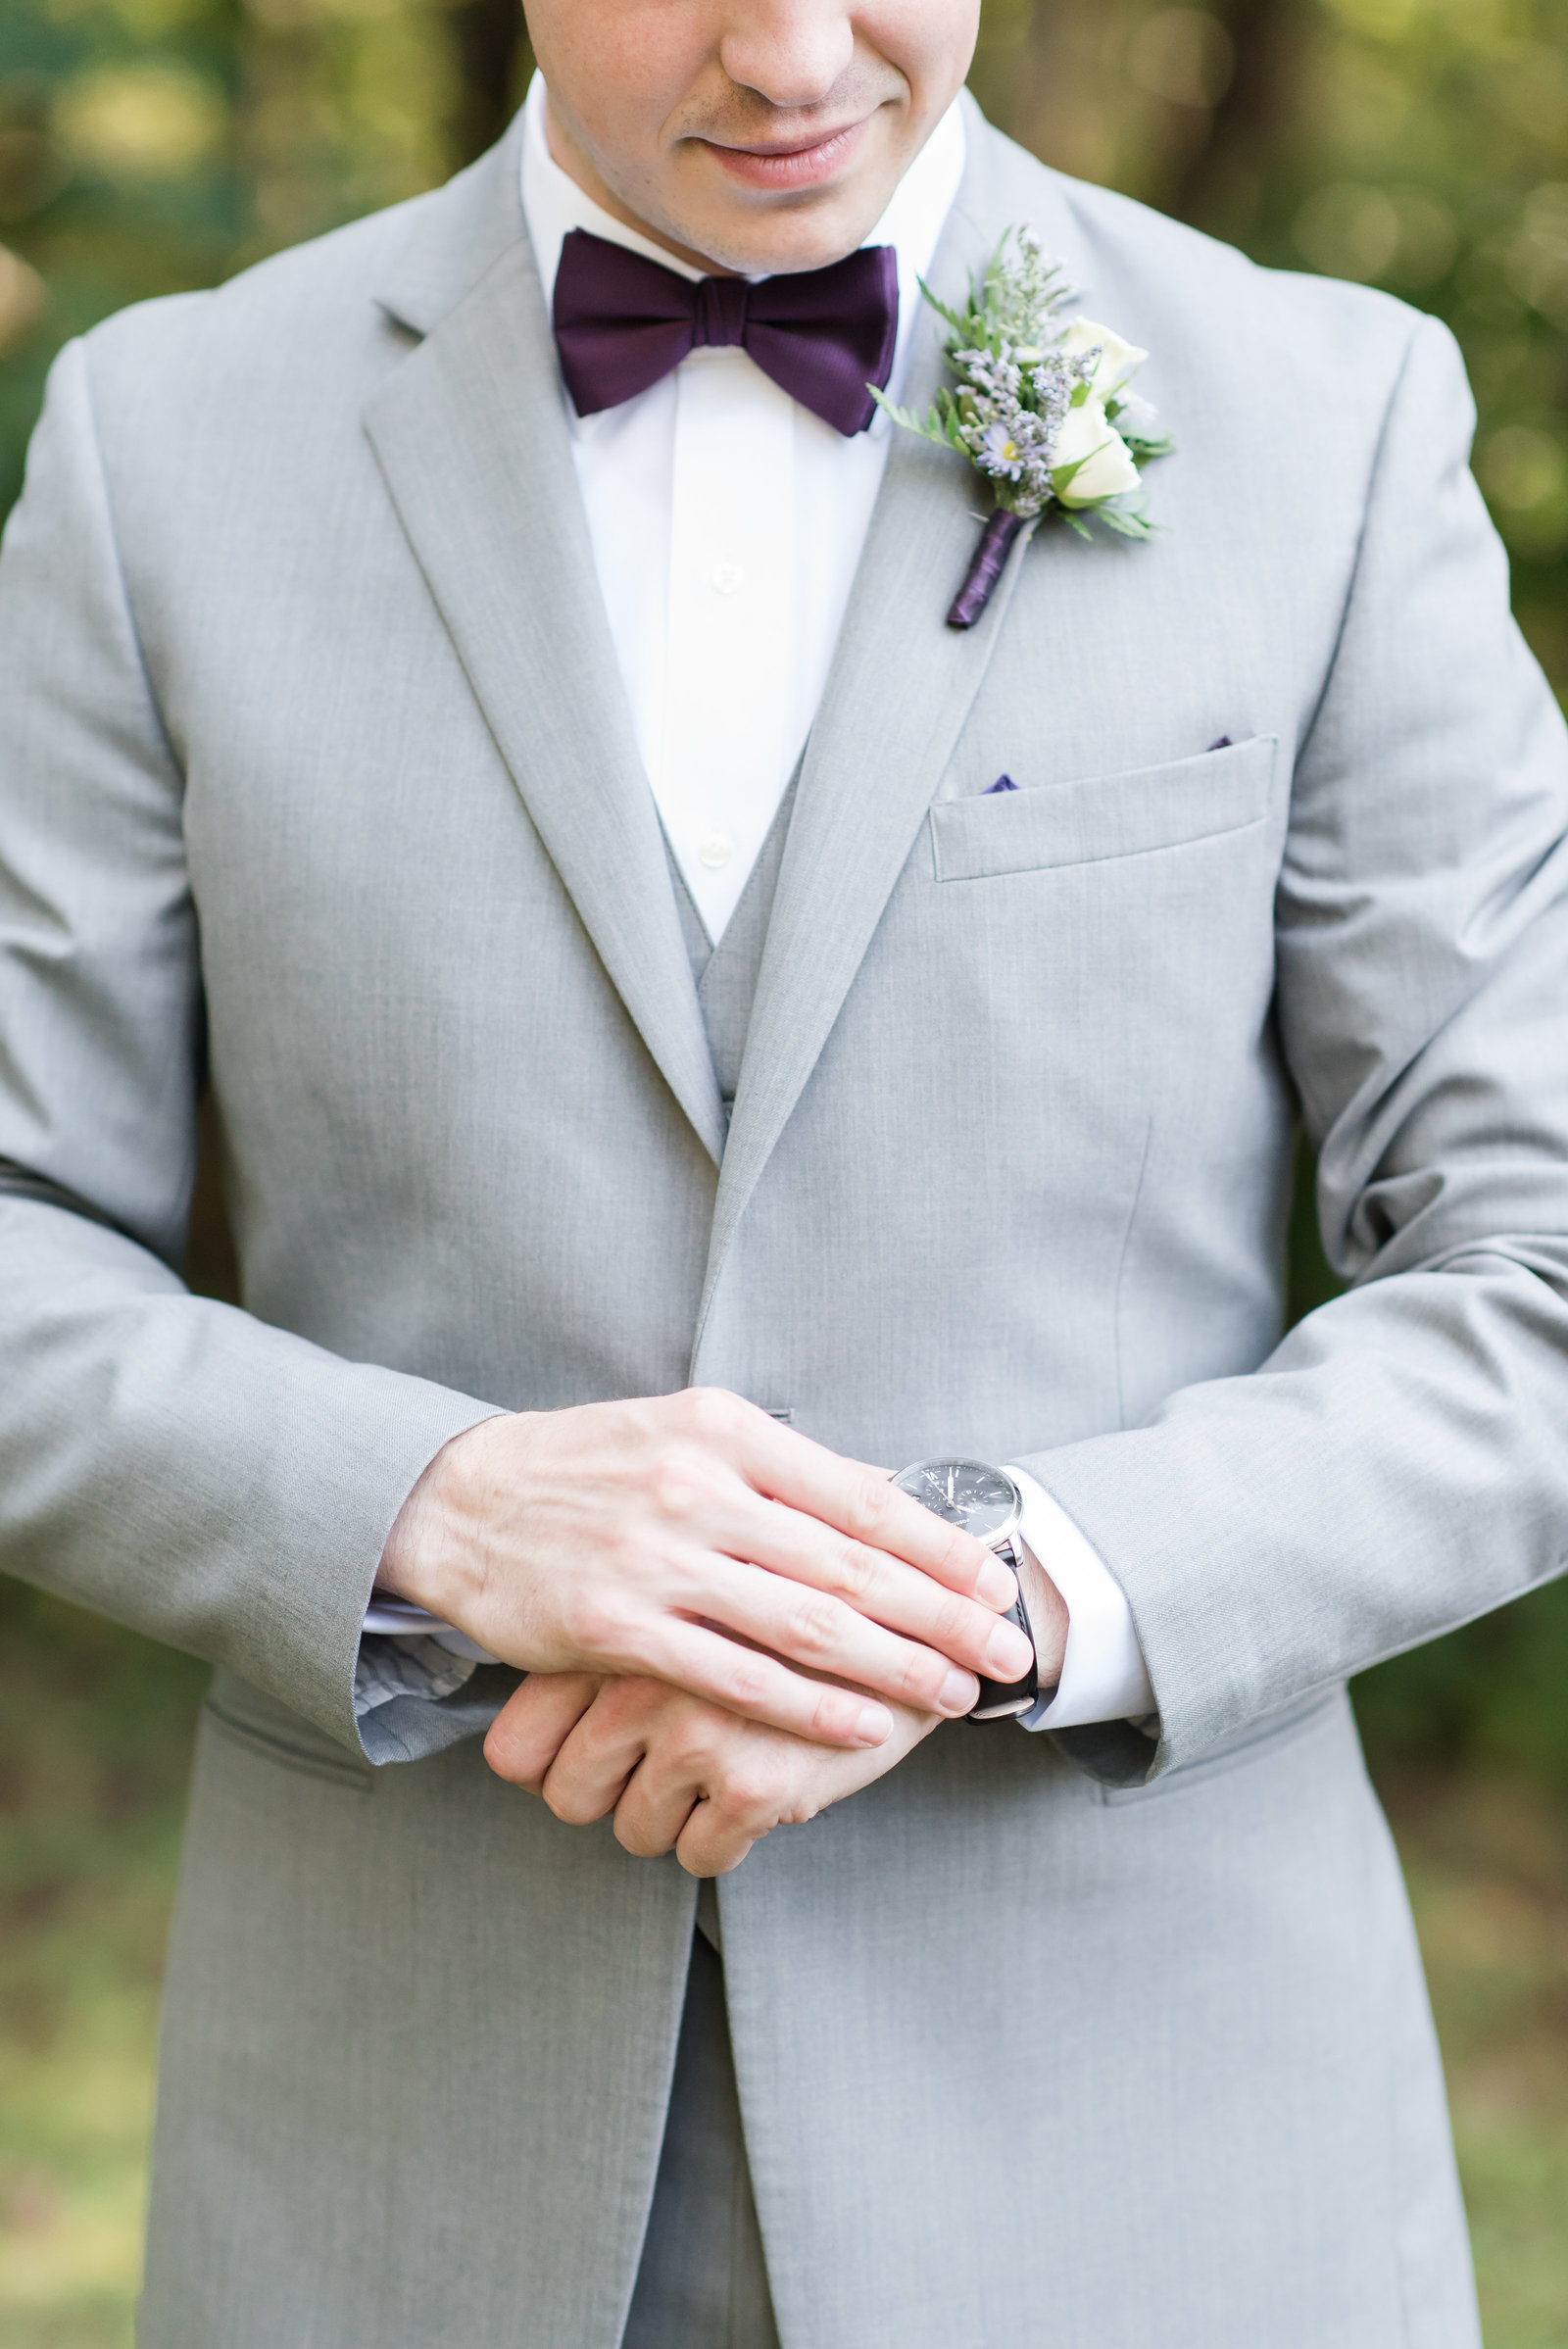 a groom wearing a gray wedding suite with a purple bowtie with while flowers who is looking down fixing his watch at Merry Hill Weddings